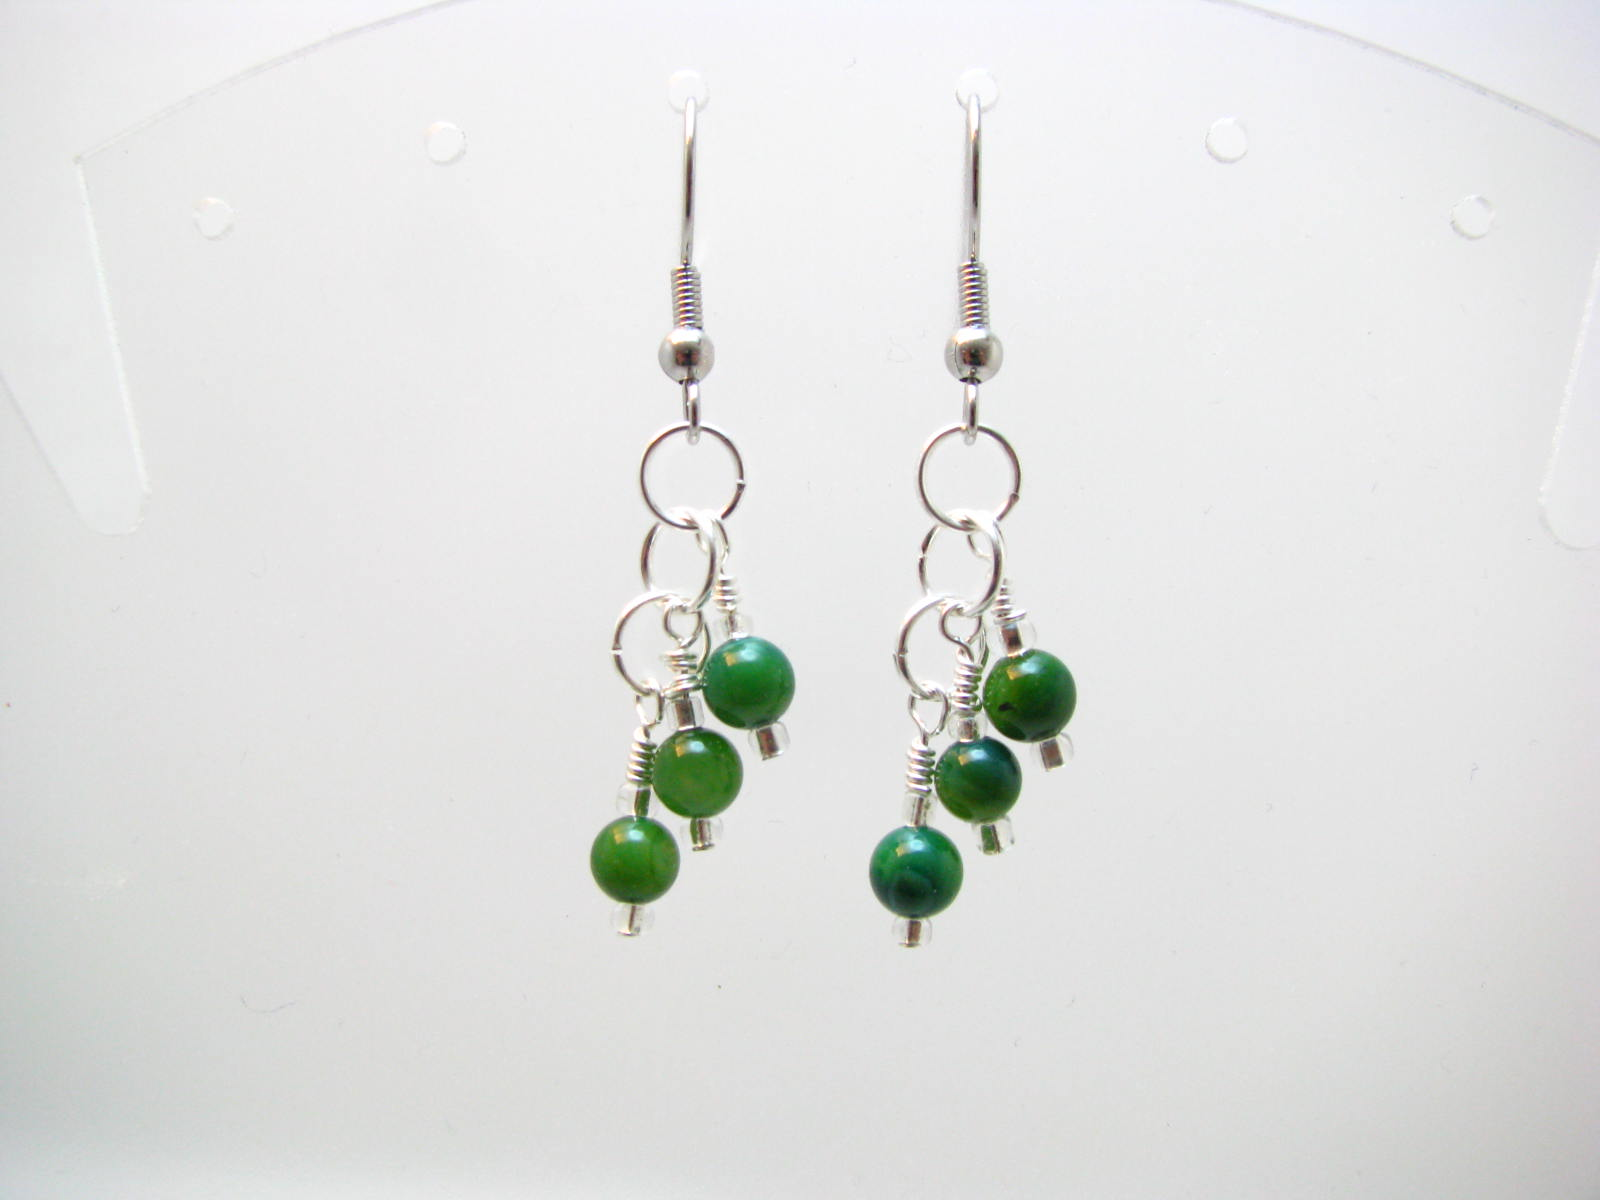 New Green Shell Earrings by Sweetfire Creations